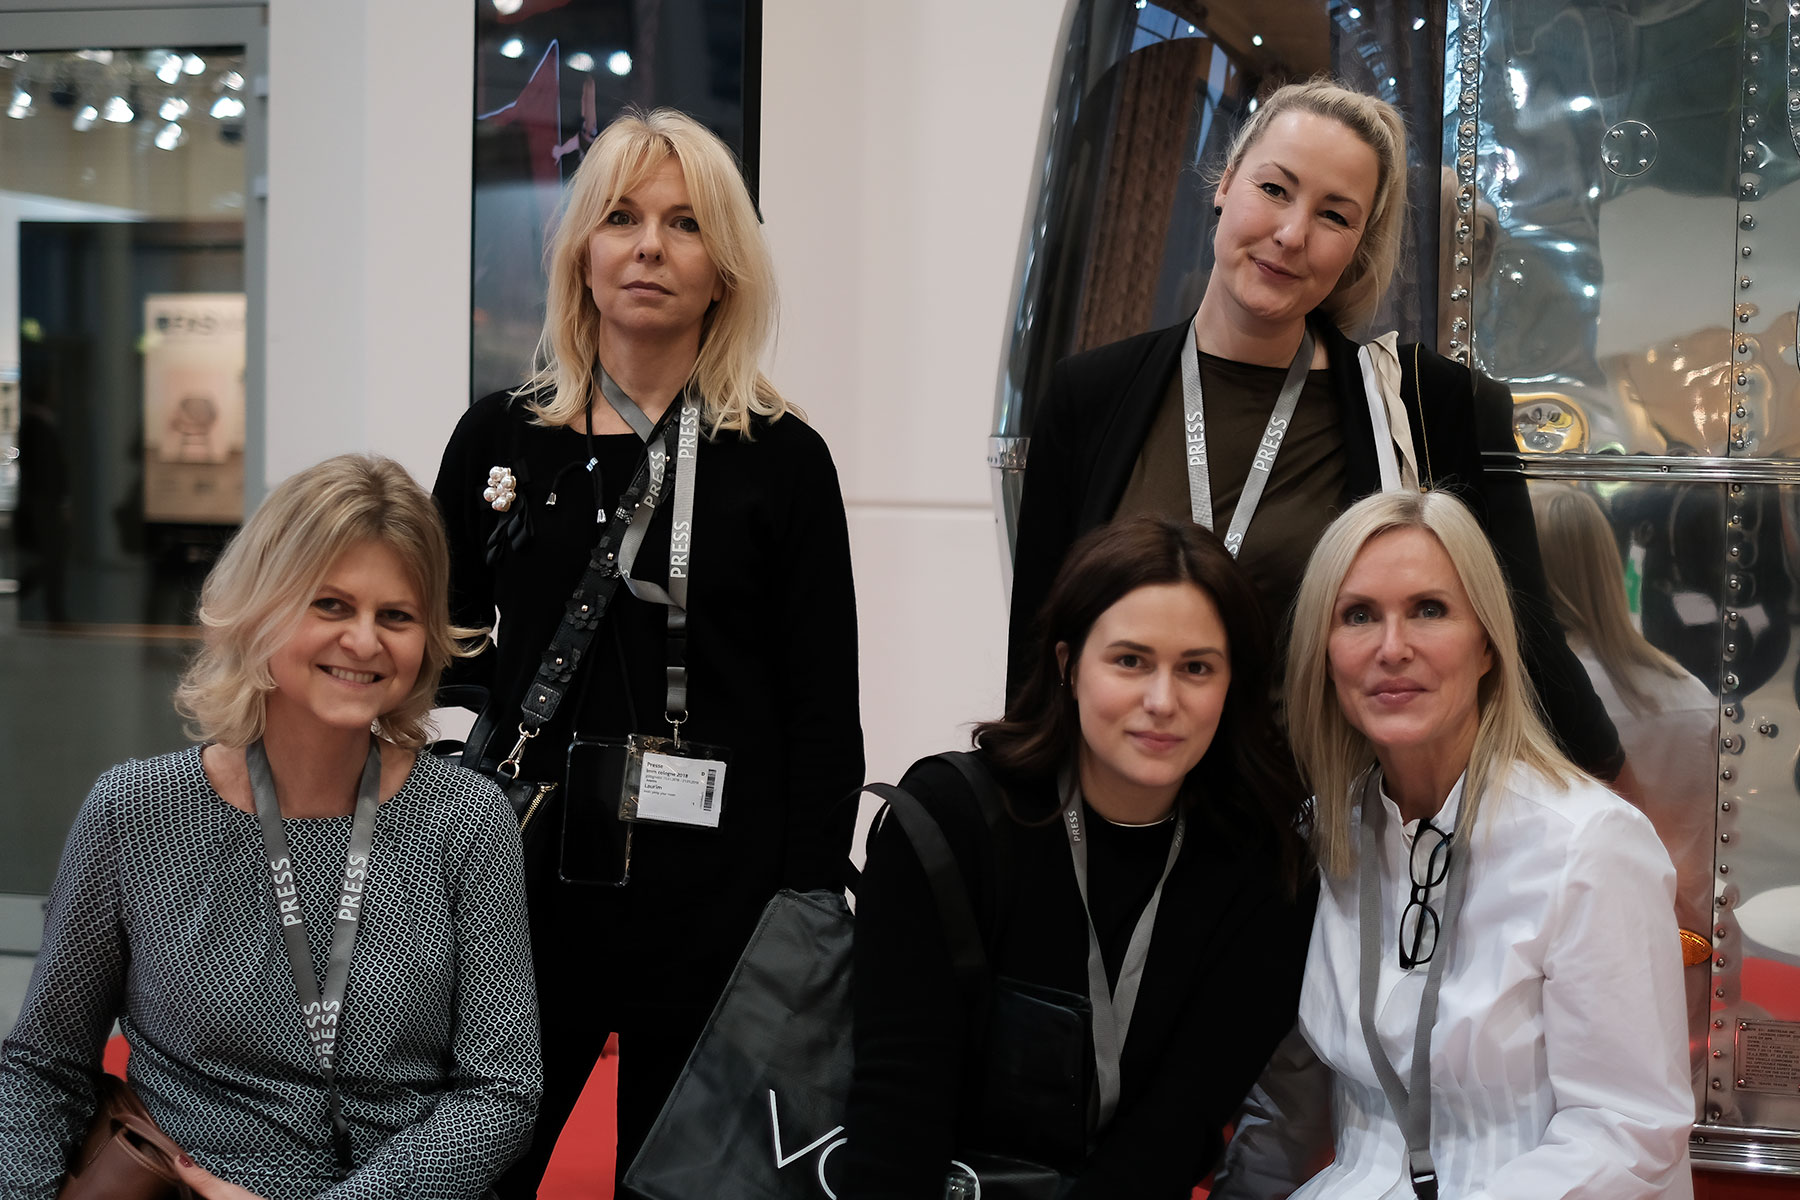 bloggers, trend fair tour, imm cologne trade fair 2018, blog post lifetime-pieces.com